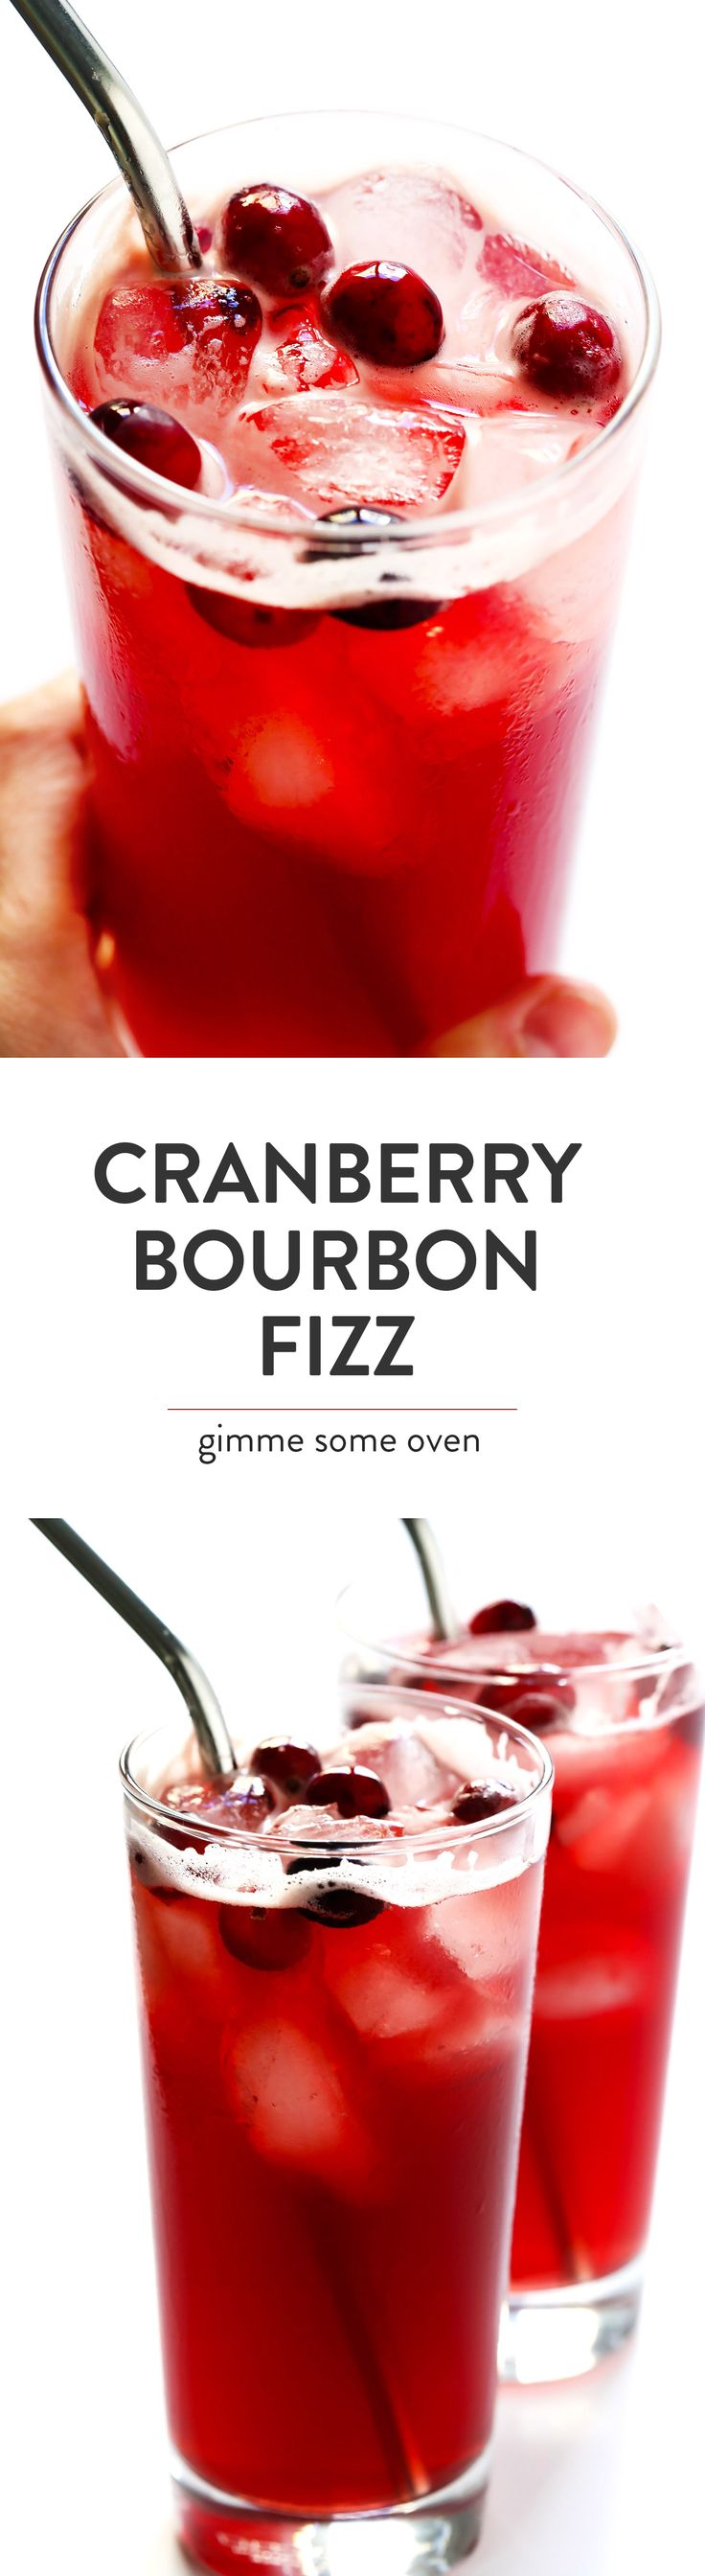 These 3-Ingredient Cranberry Bourbon Fizz cocktails are super quick and easy to make, and the ginger beer gives then an extra fizzy, spicy kick. They're the perfect simple drink for holiday entertaining (perfect especially for Thanksgiving and Christmas)!